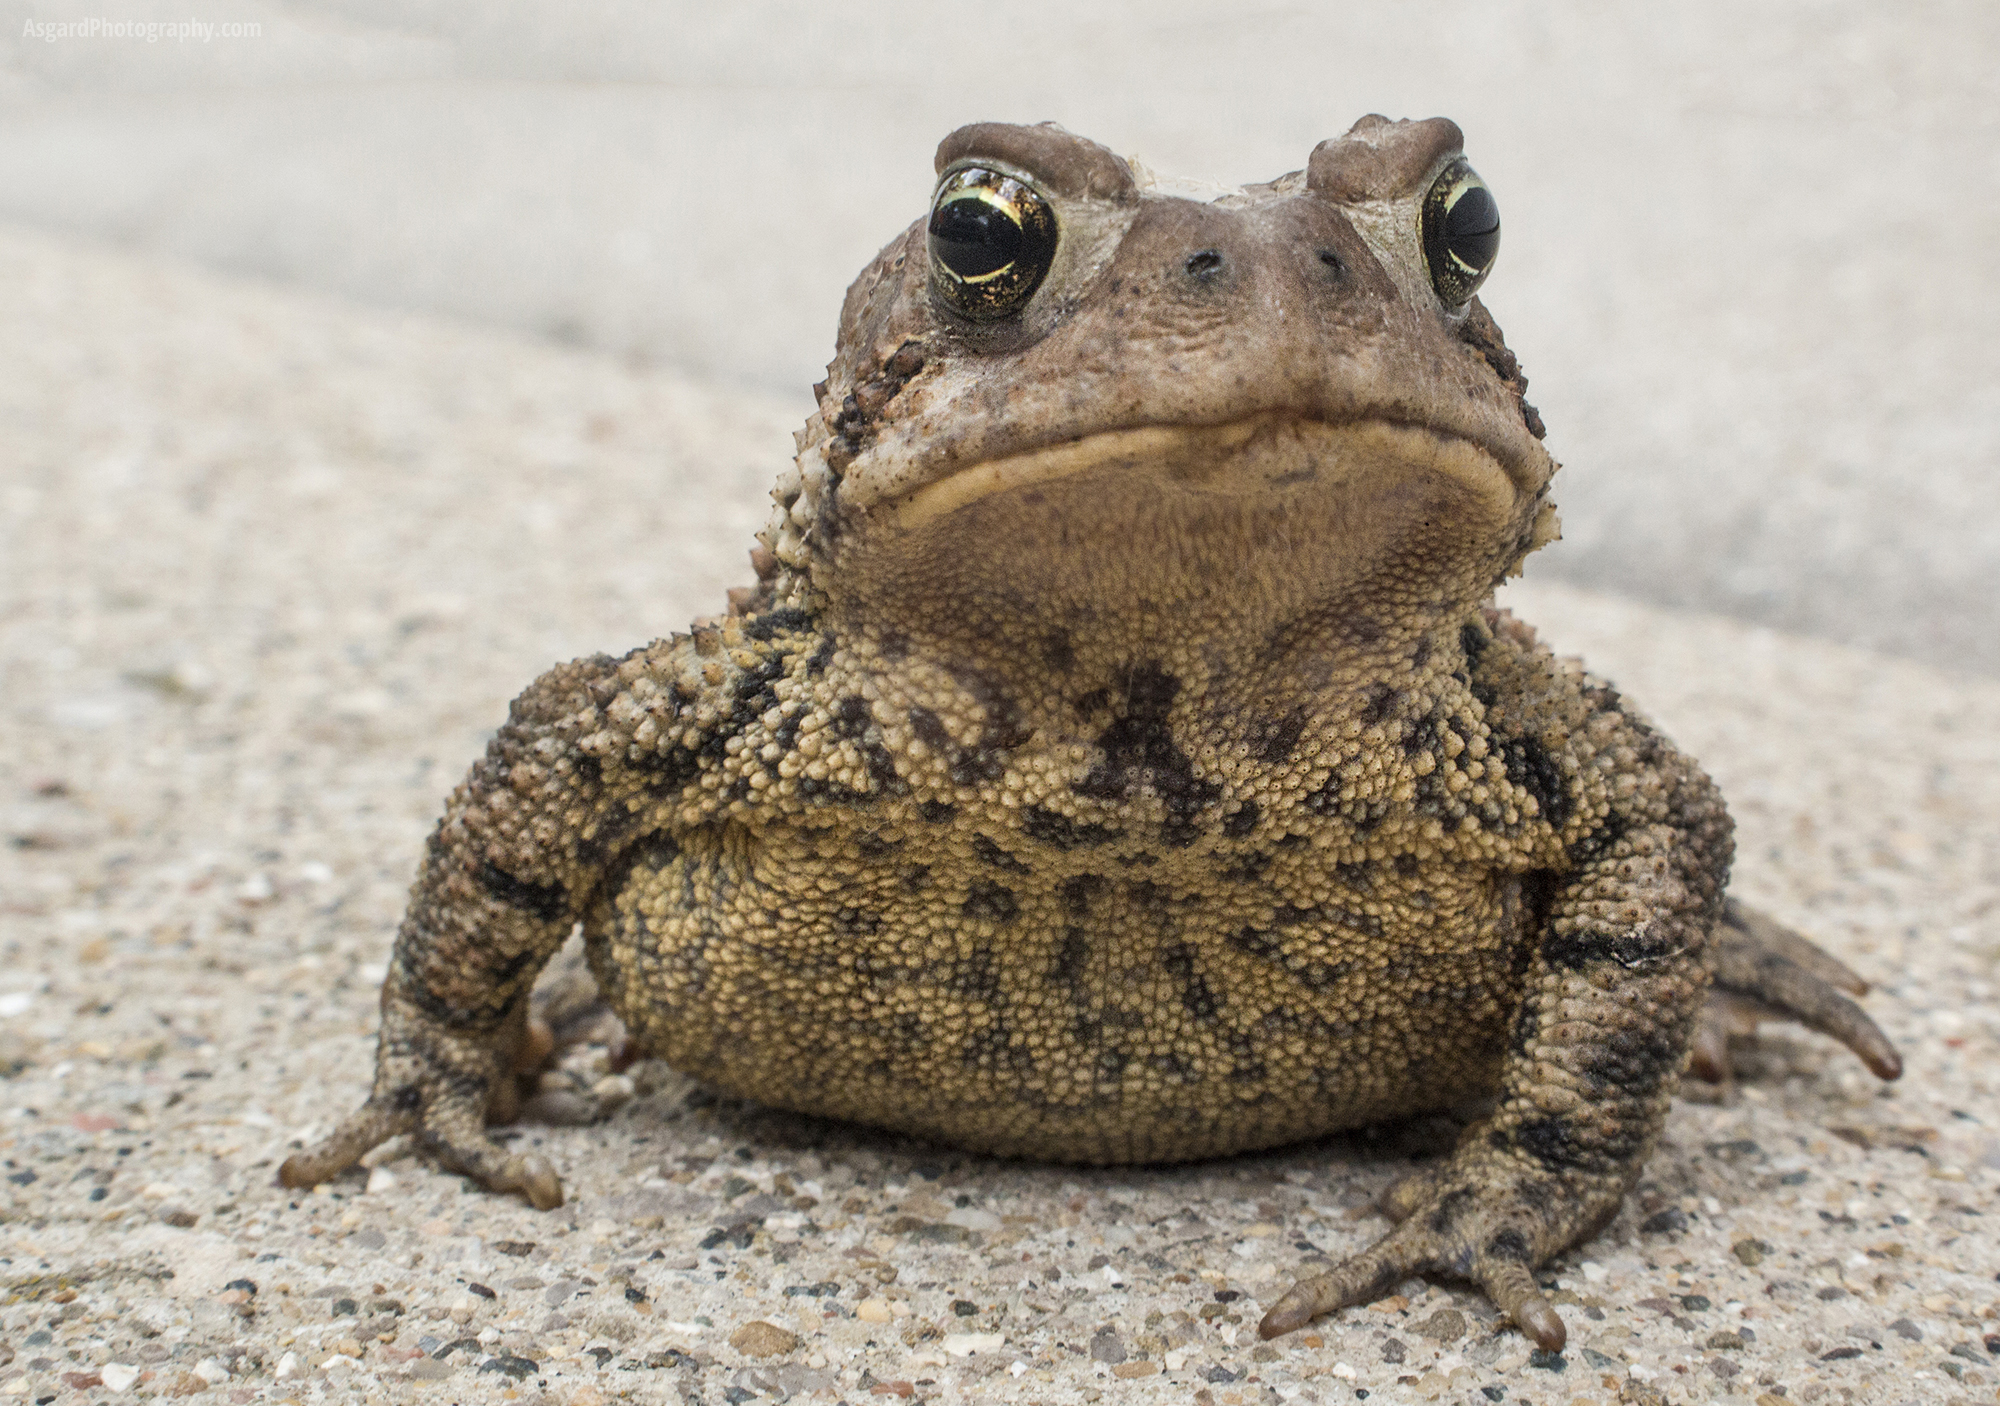 toad on the road asgard photography